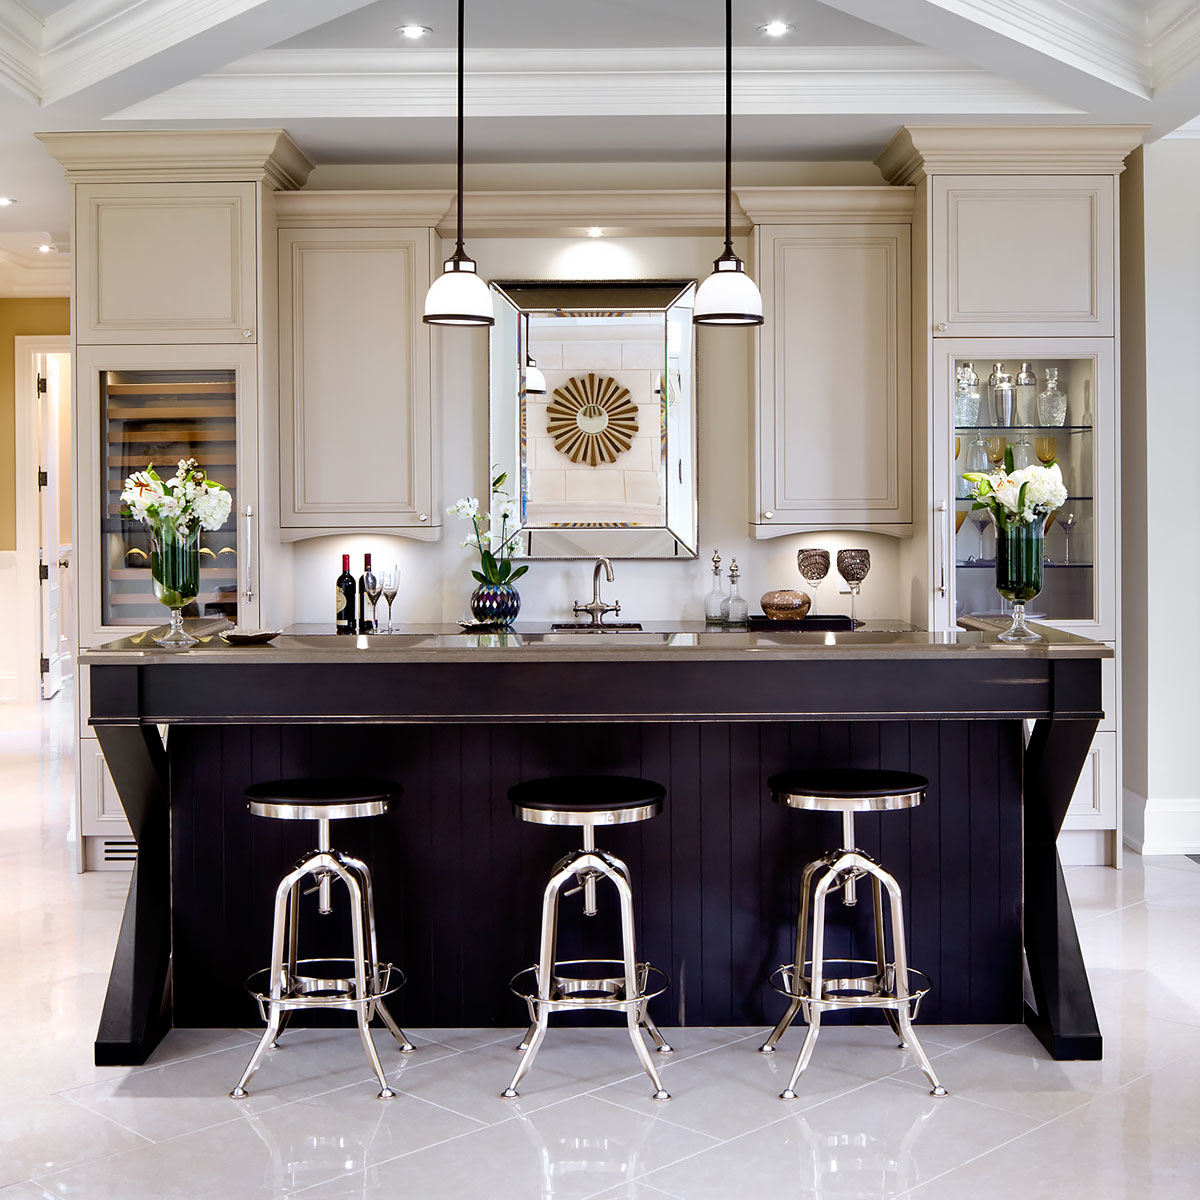 kitchen designers swan granite sinks kitchens jane lockhart interior design